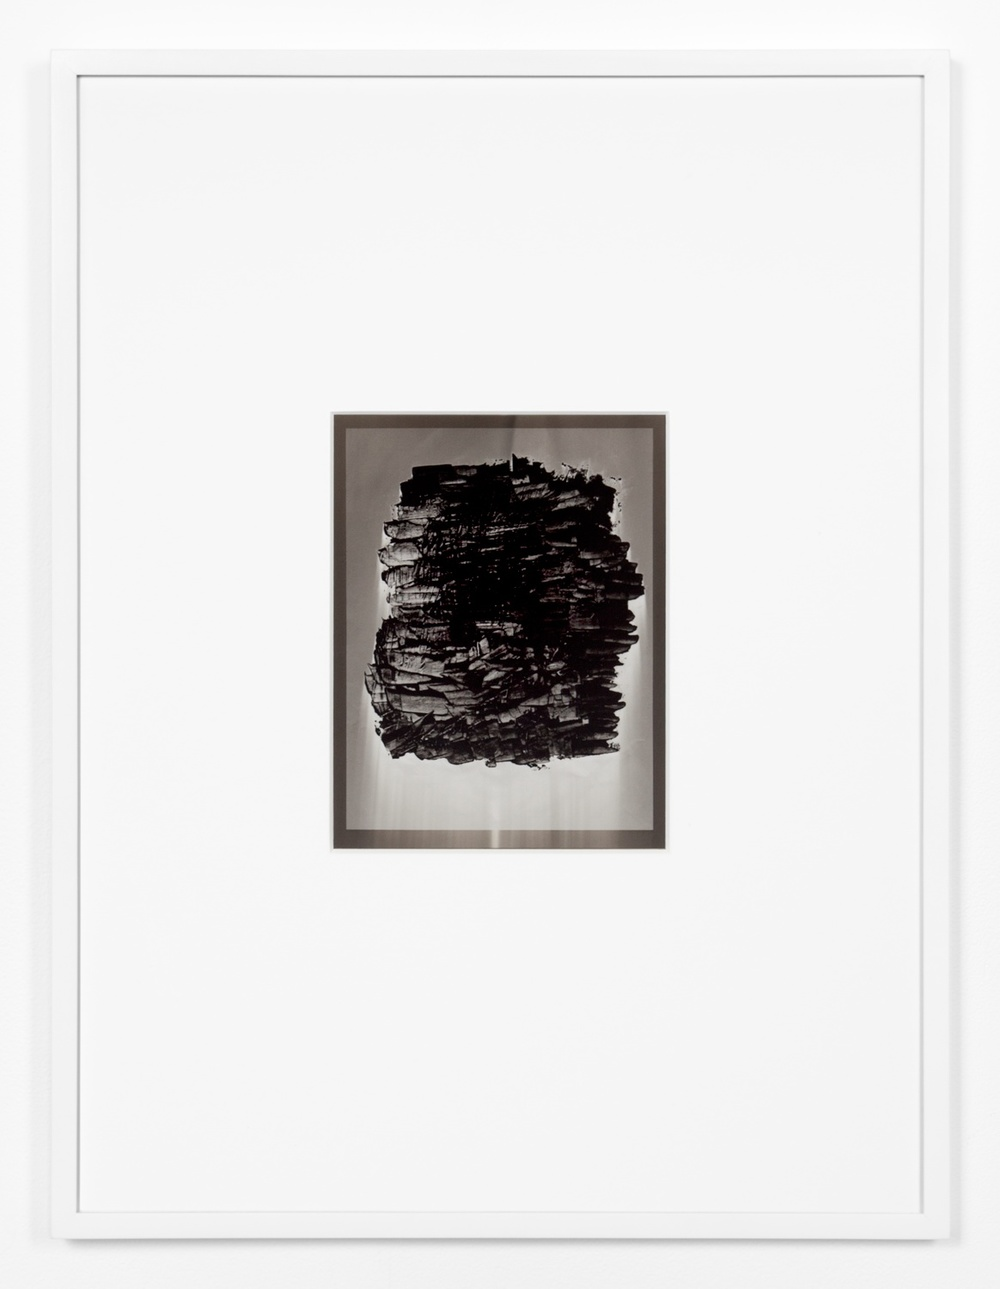 "Anthony Pearson Untitled (Solarization) 2012 Framed solarized silver gelatin photograph 17"" x 12 19/24"" x 1"" AP317"